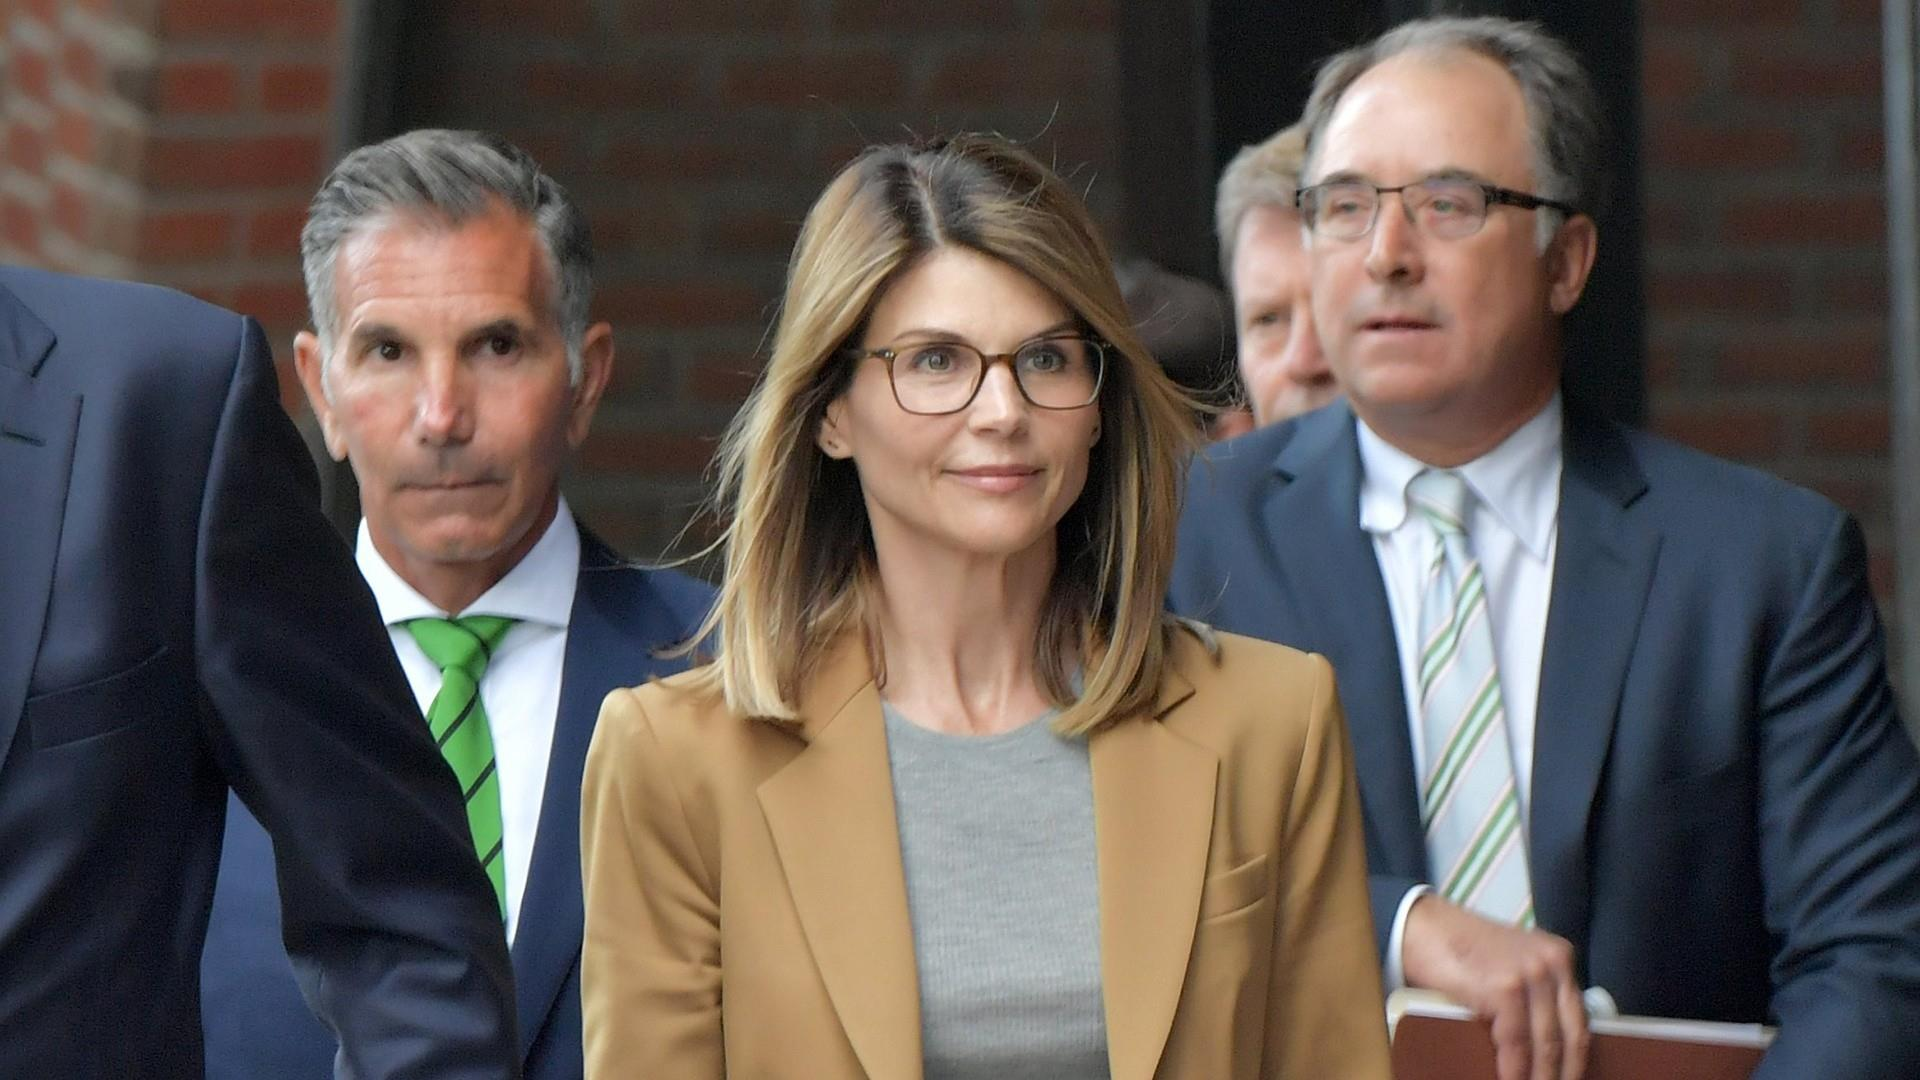 College admissions scandal mystery solved? Chinese family allegedly